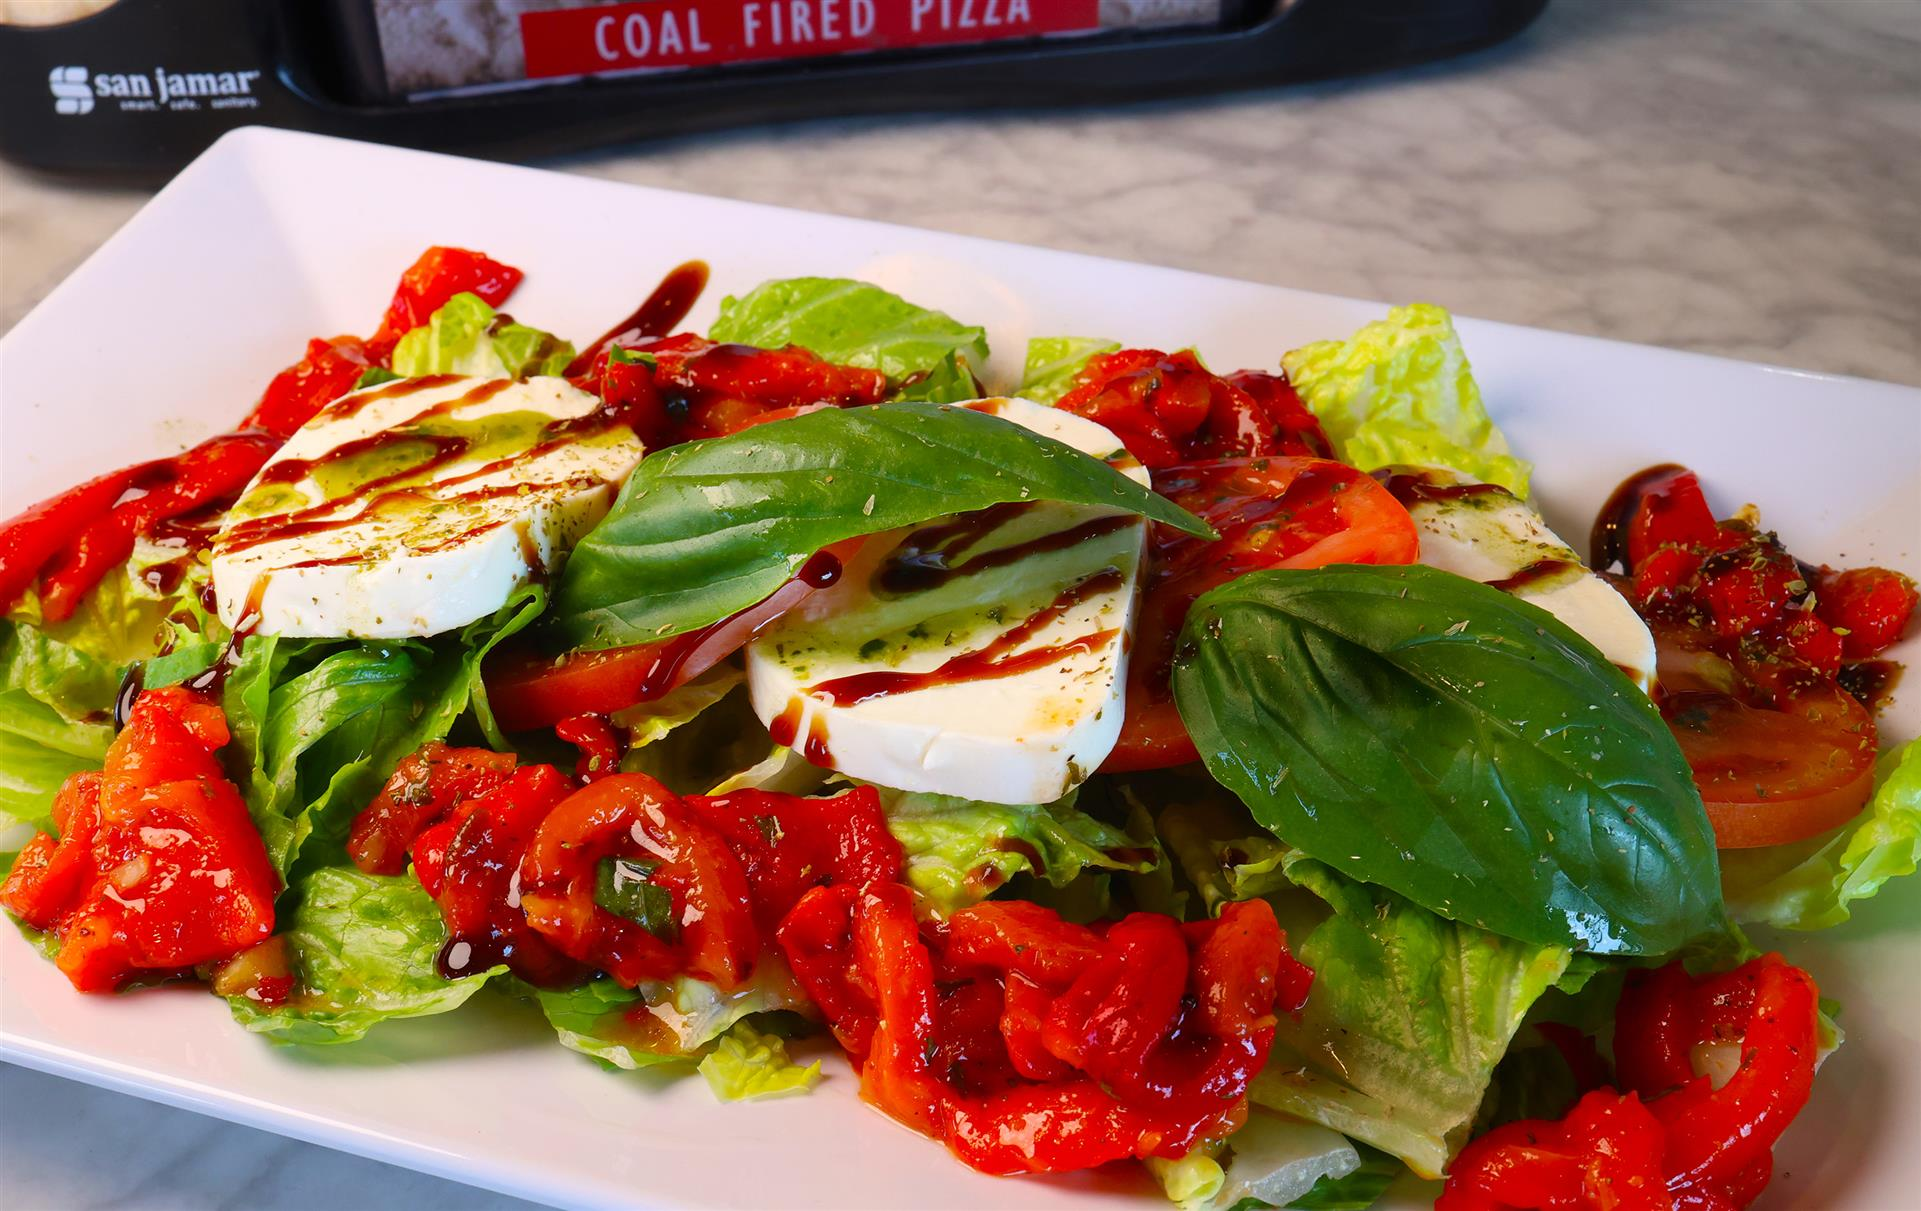 iceberg lettuce with roasted red peppers, sliced mozzarella and tomatoes with a balsamic drizzle